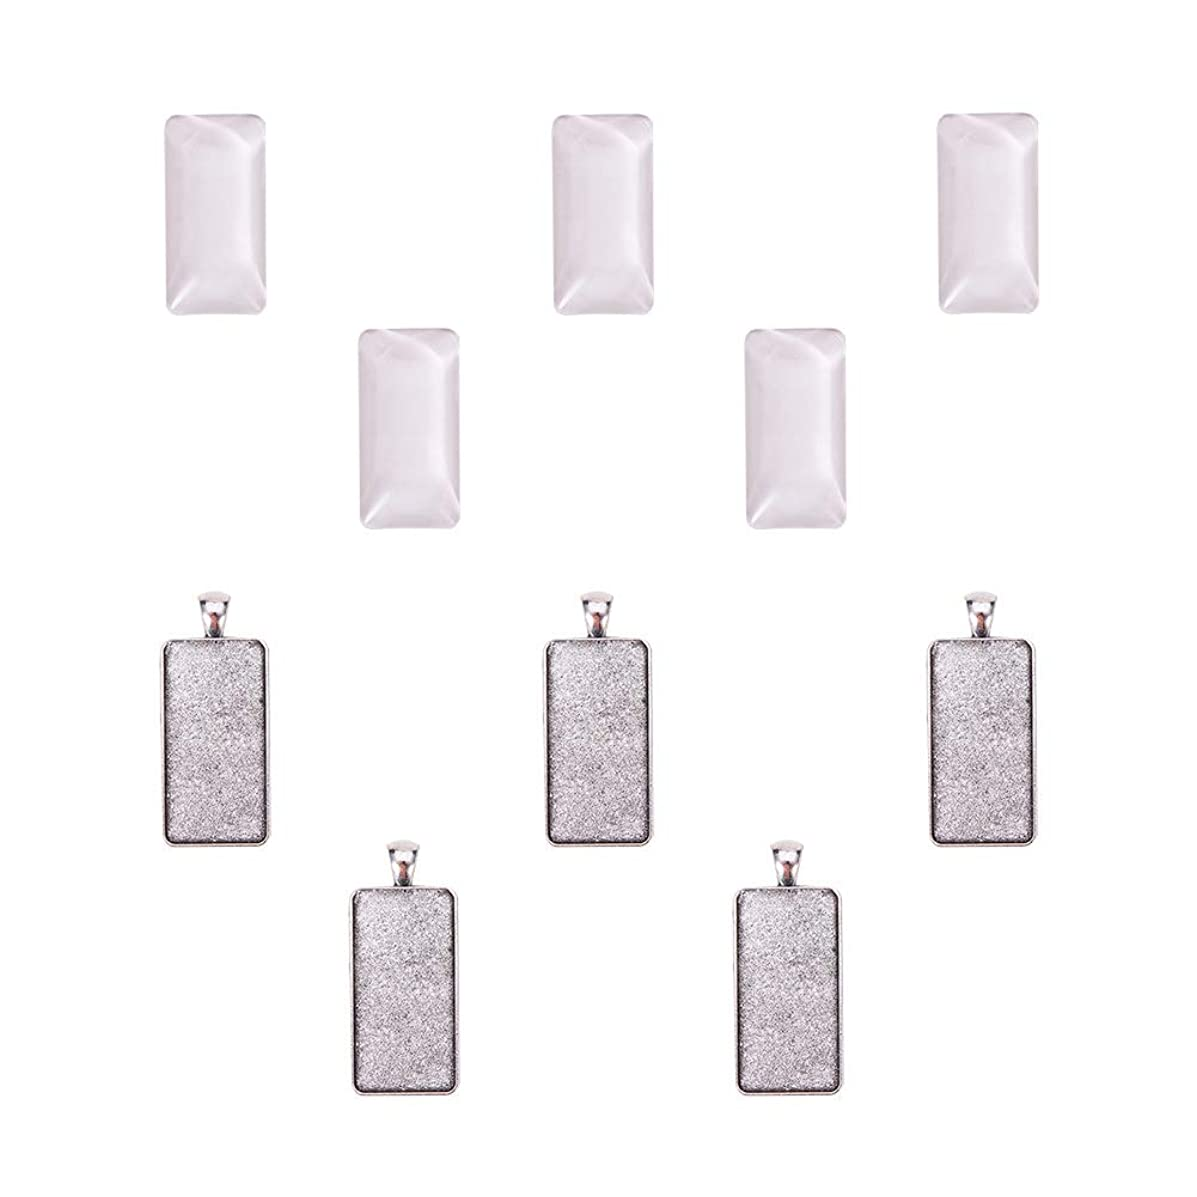 PH PandaHall 5 Sets Pendant Makings Sets - 5pcs Rectangle Antique Silver Alloy Pendant Trays Bezel Settings and 5pcs Glass Cabochon Dome Tiles Clear Cameo for DIY Jewelry Making